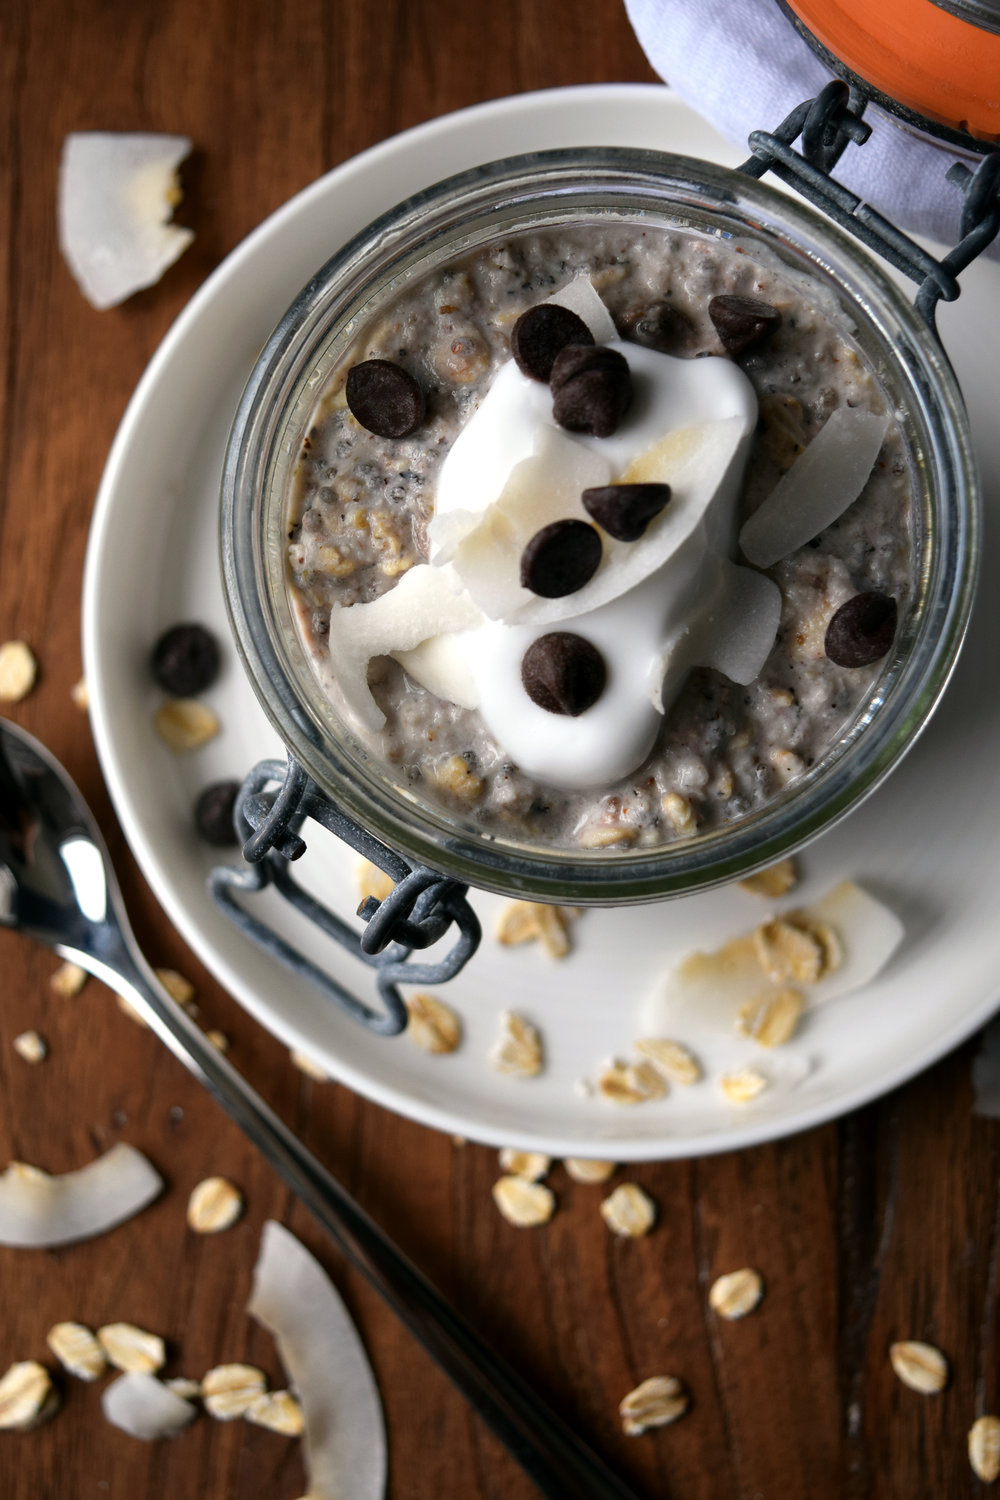 Creamy overnight oats made with cashew milk and coconut yoghurt.